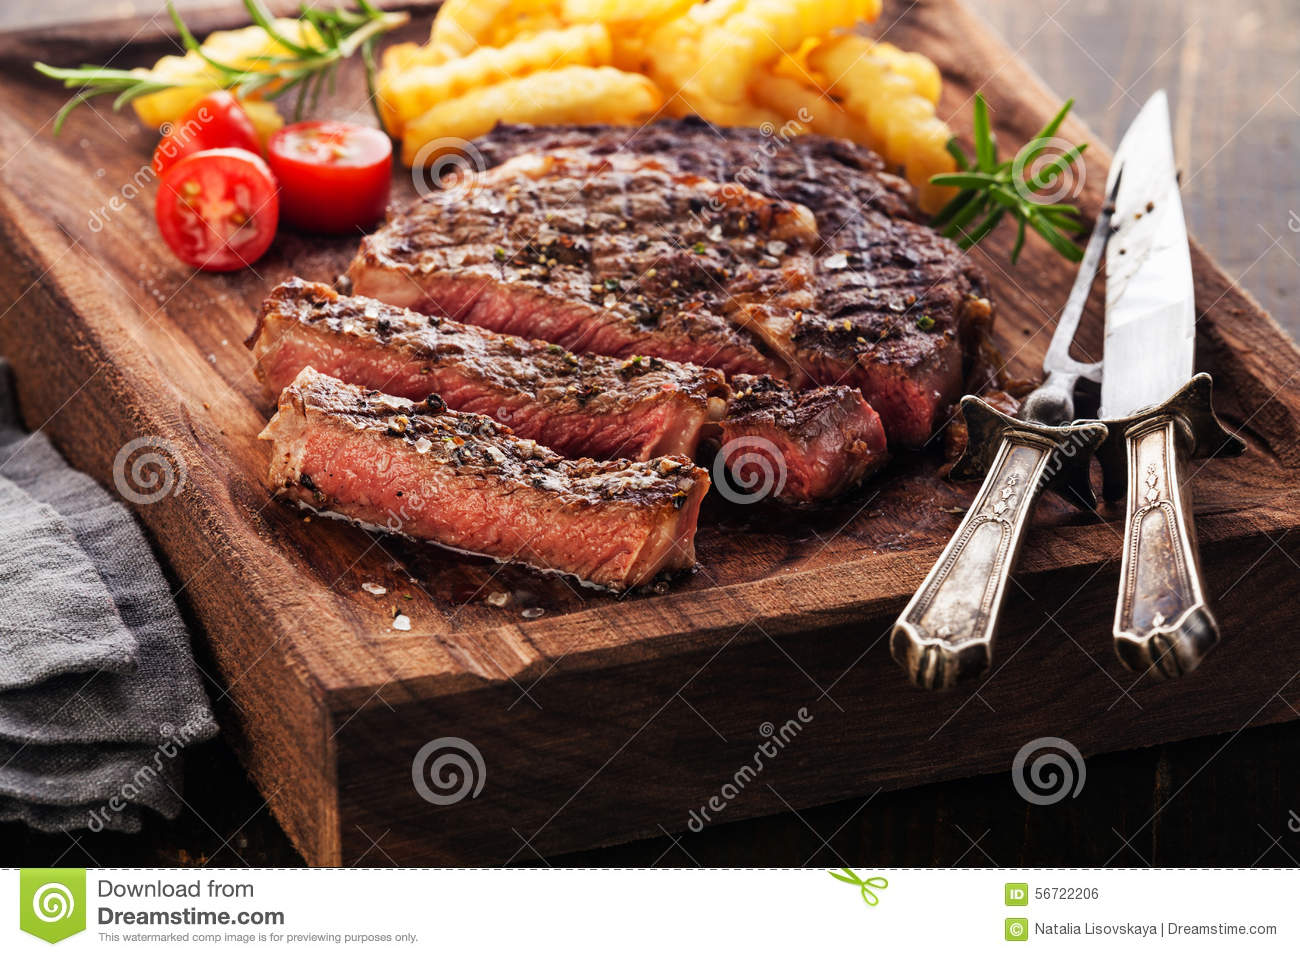 how to cook a medium rare steak on the grill